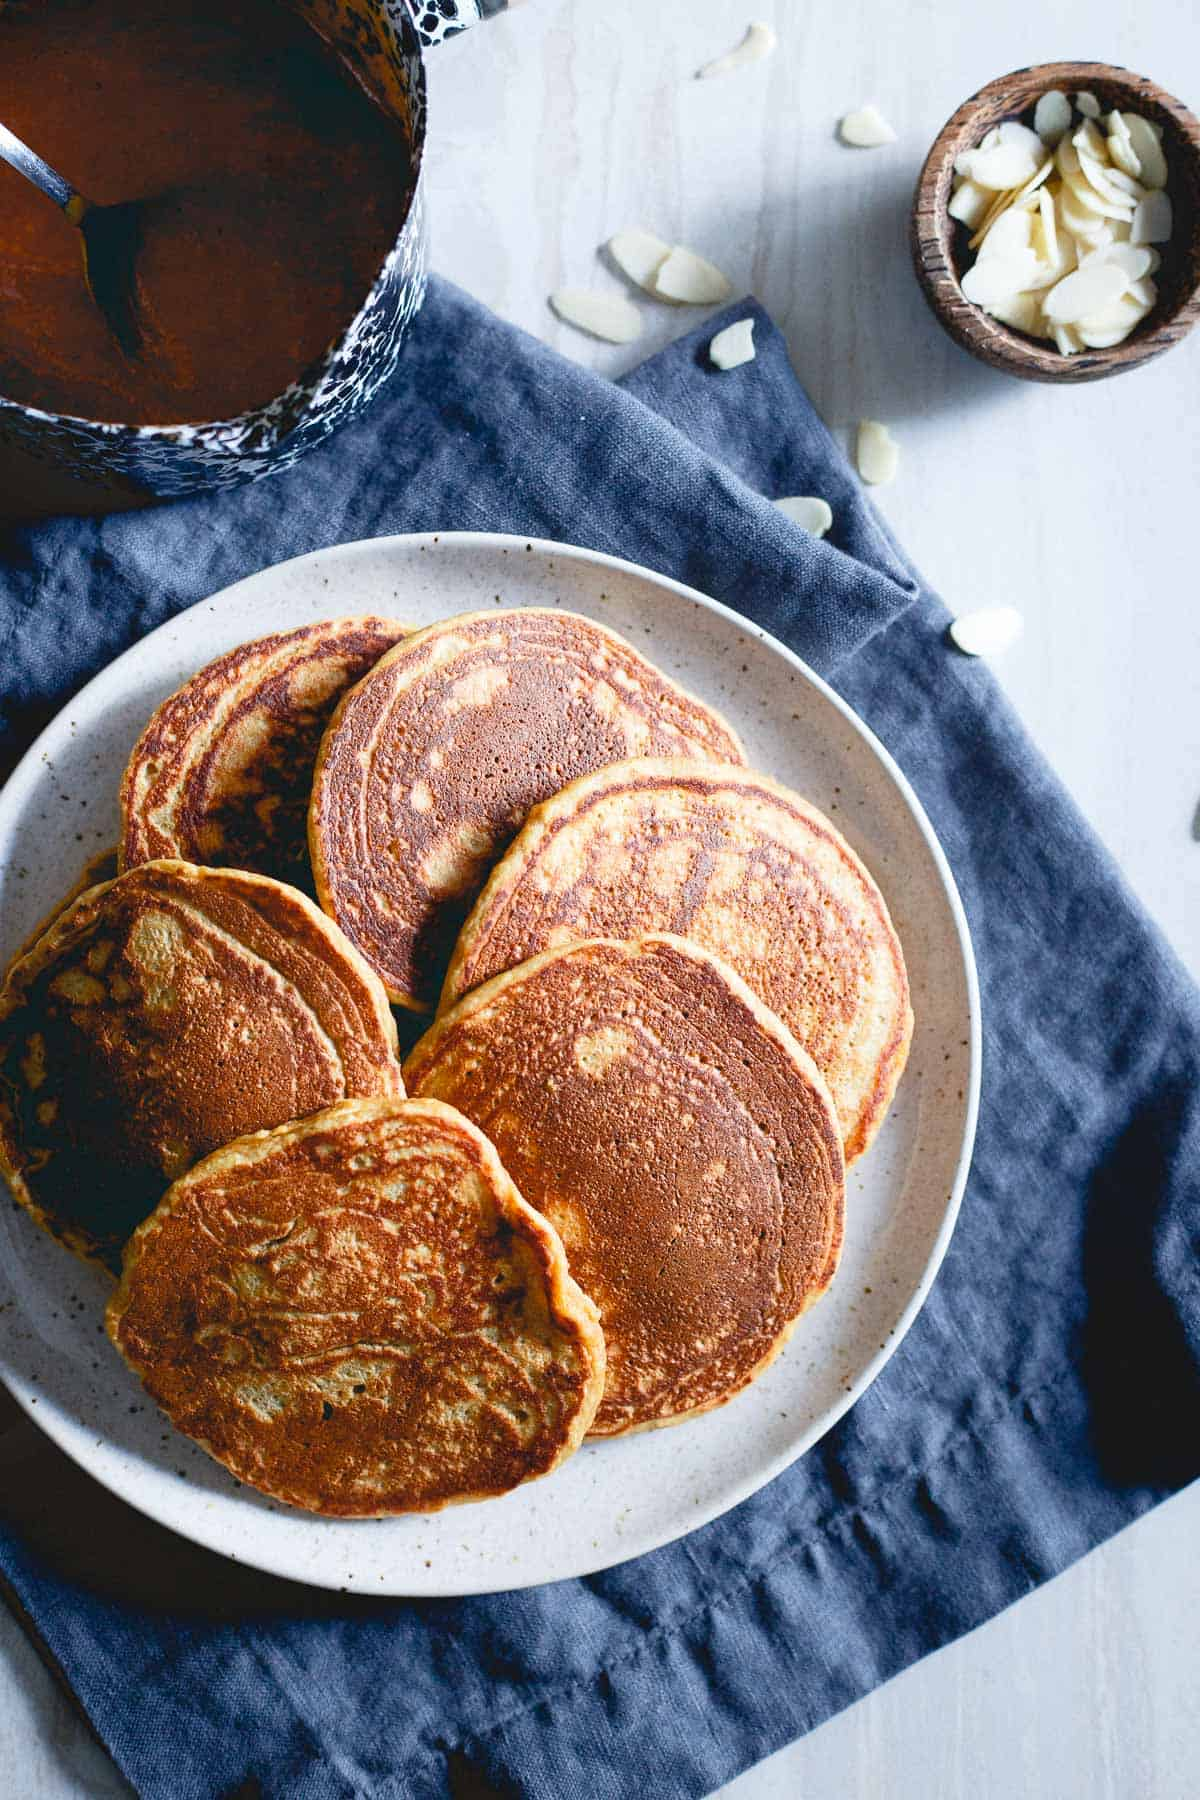 Adding persimmon puree to pancakes is the perfect winter twist for a cozy breakfast.